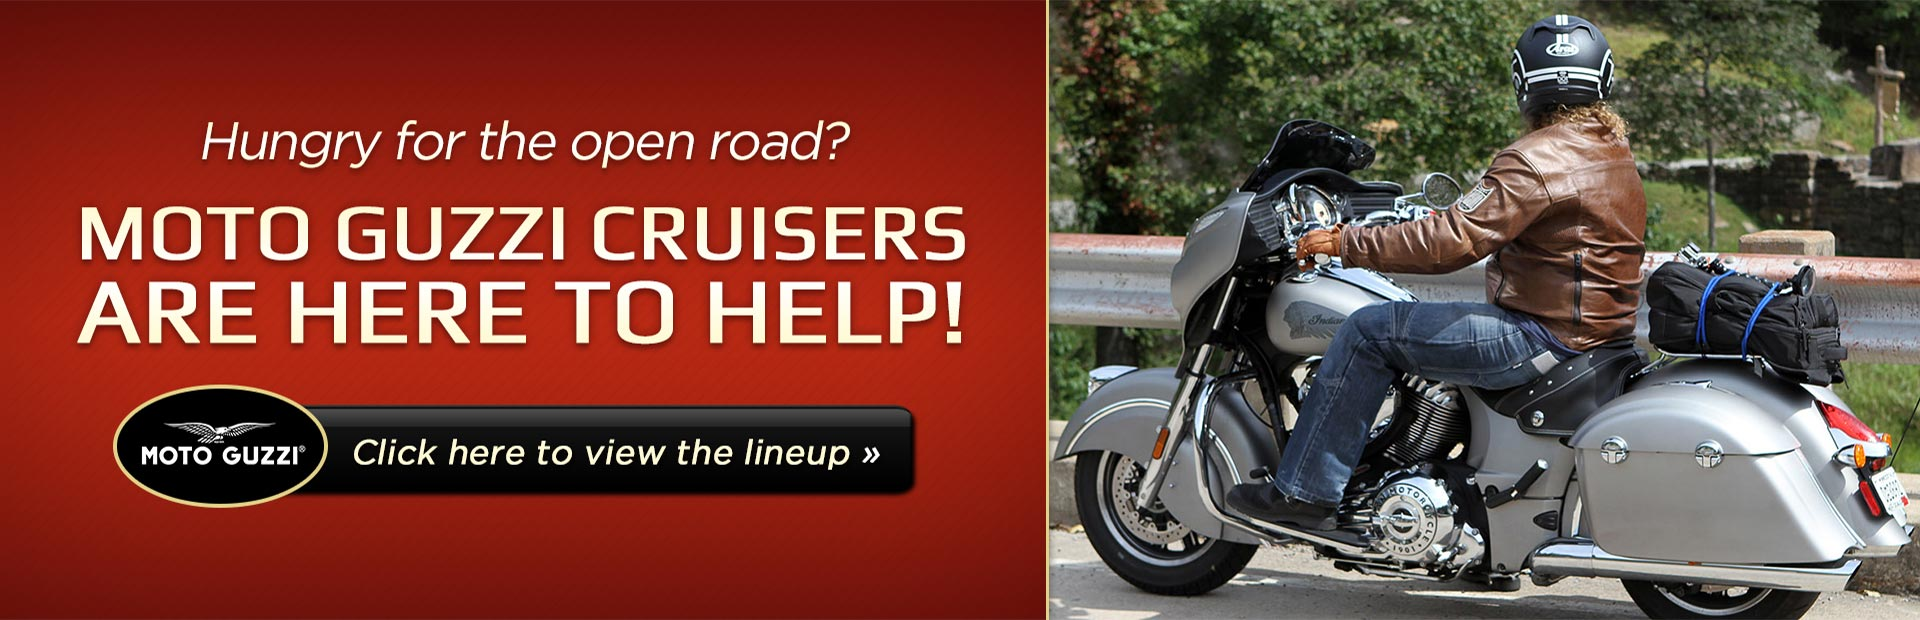 Click here to view Moto Guzzi cruisers.